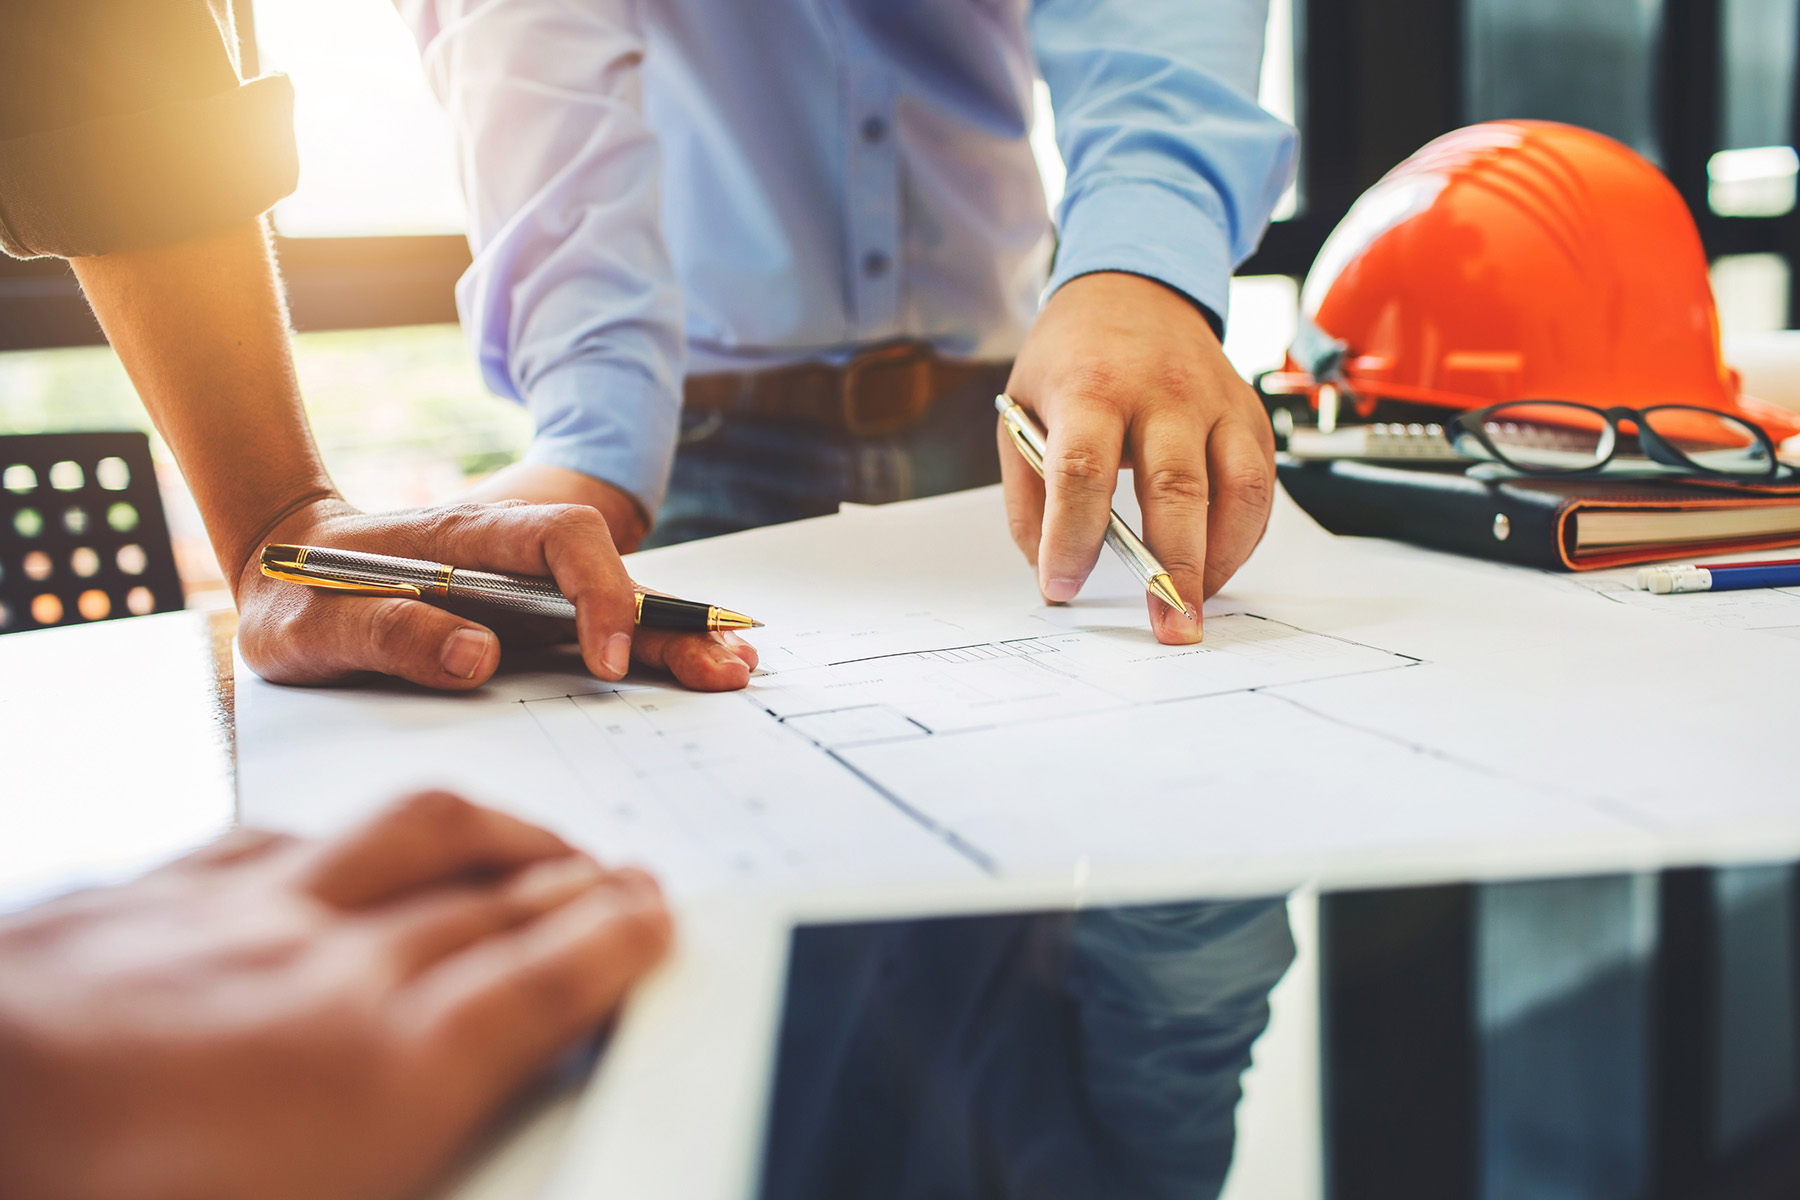 Chartered Architect Cardiff | Architecture engineering teamwork meeting | David A Courtney Architect